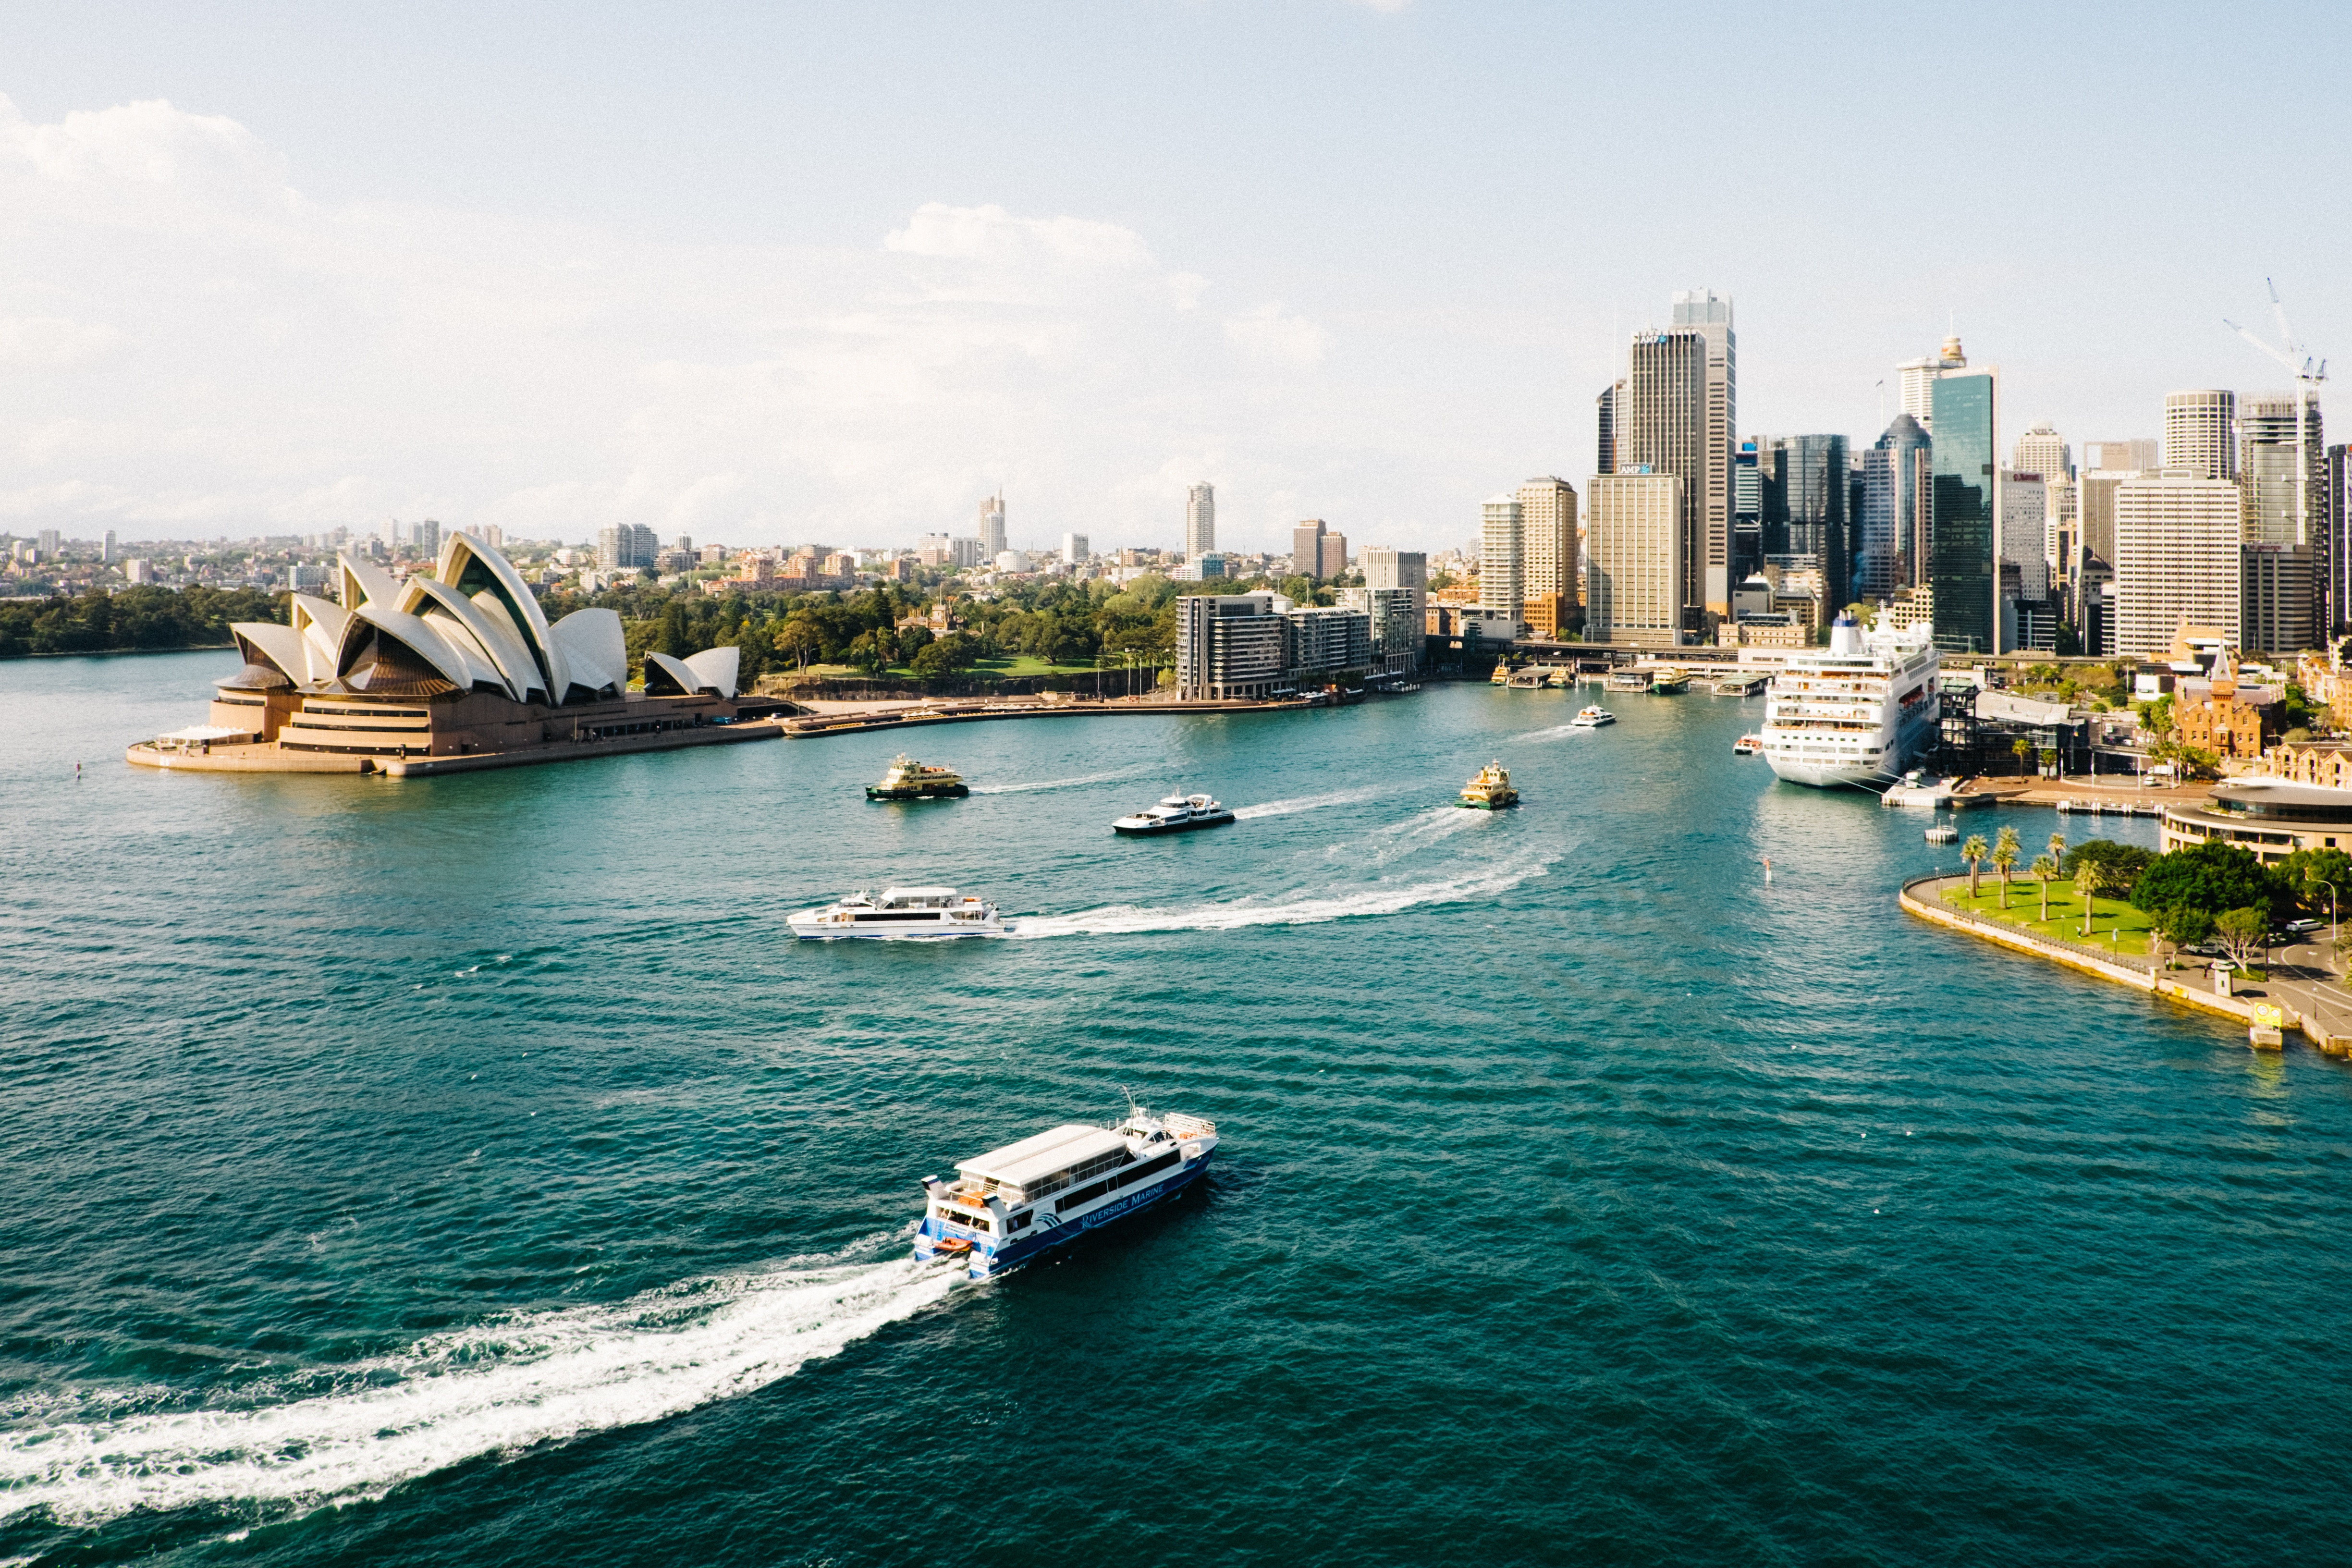 DISCOVER THE WONDERS OF SYDNEY